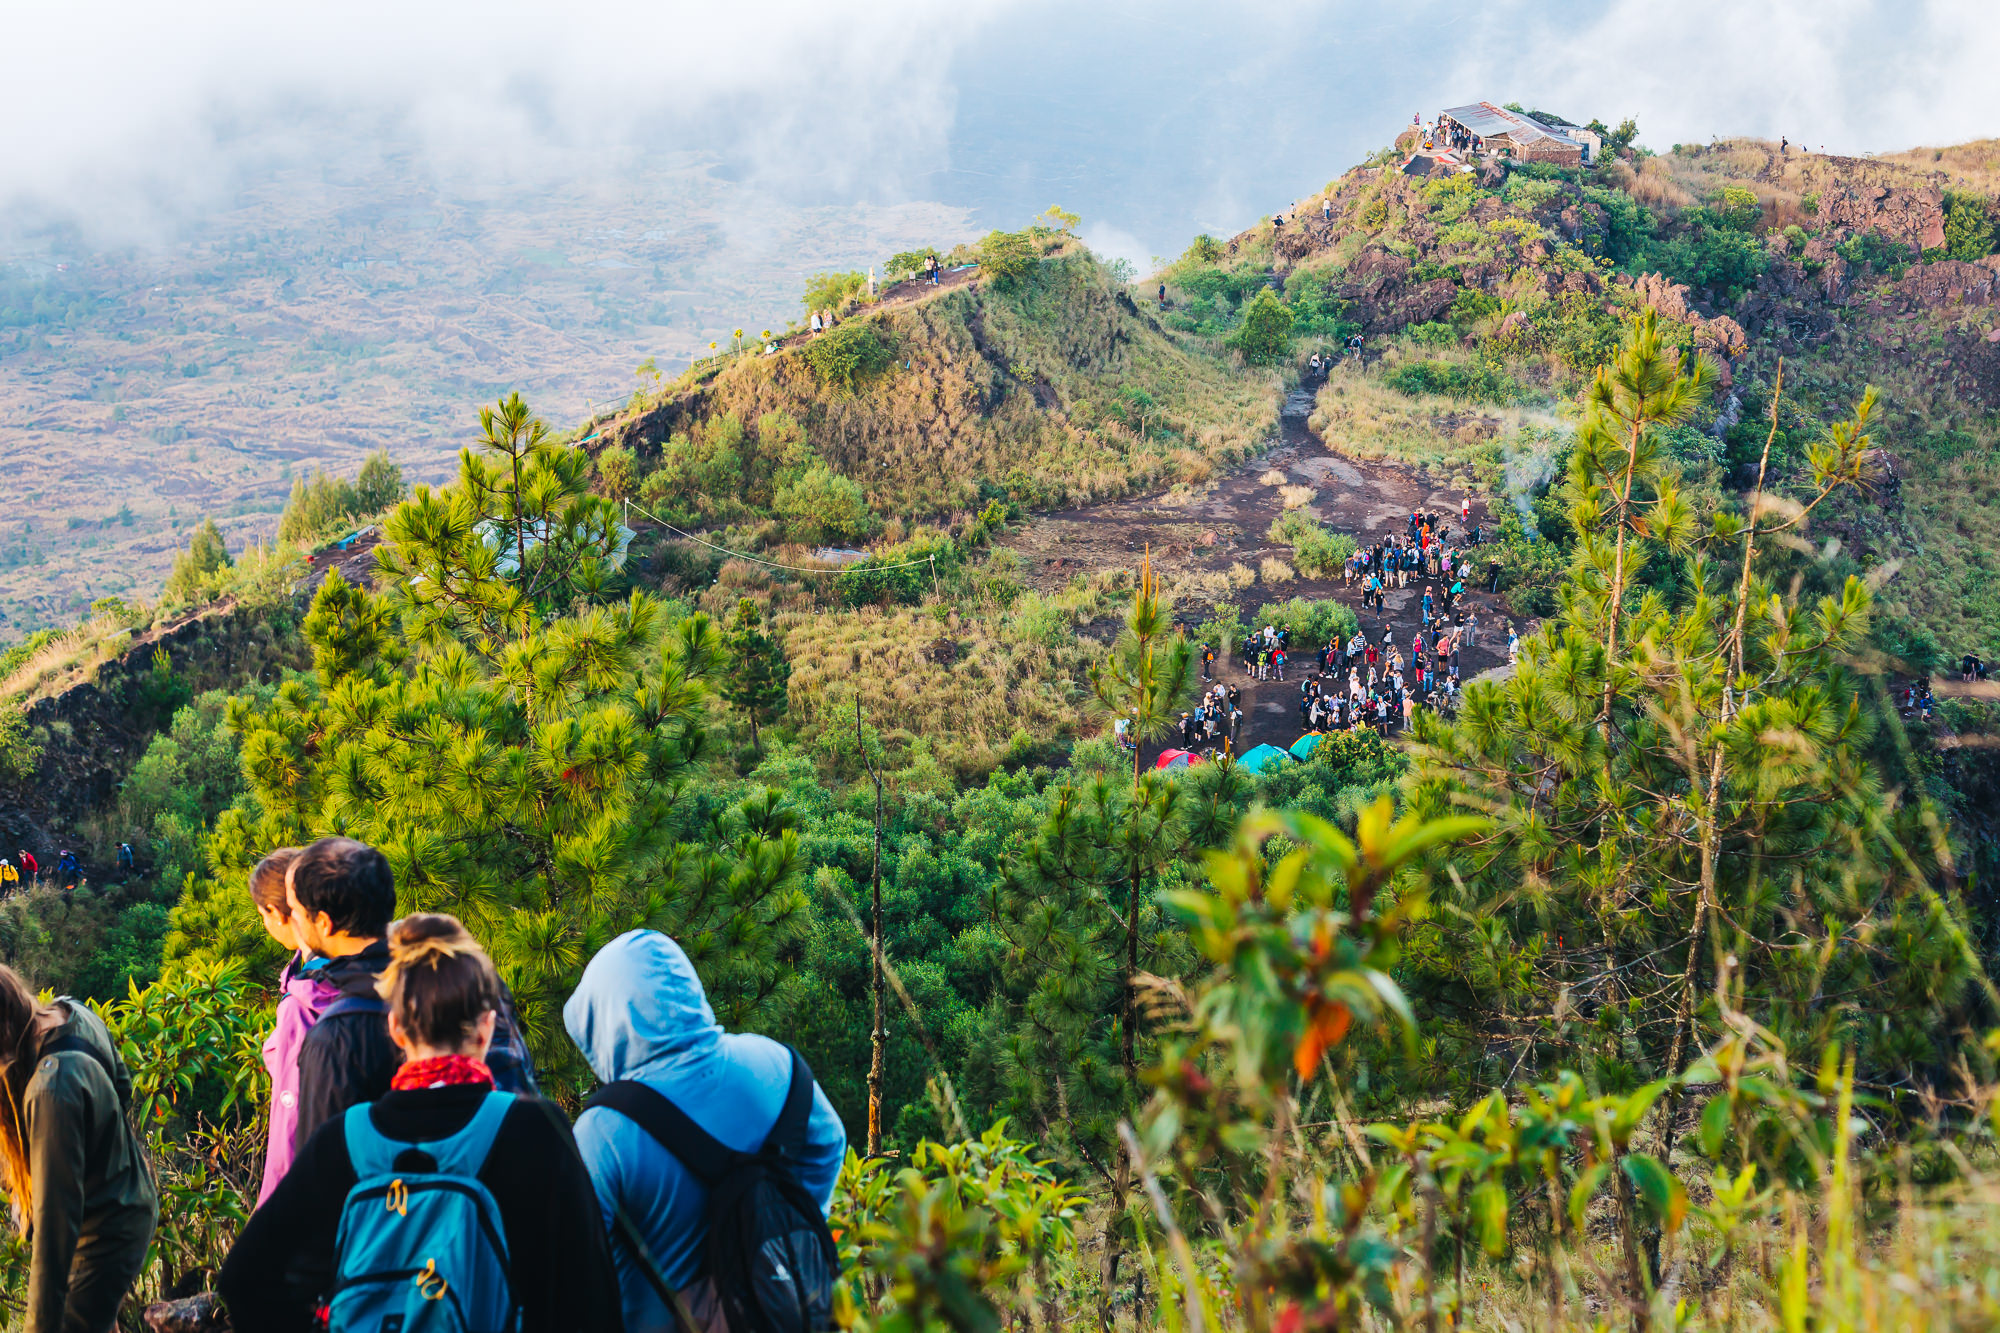 Many hikers conquering Mount Batur